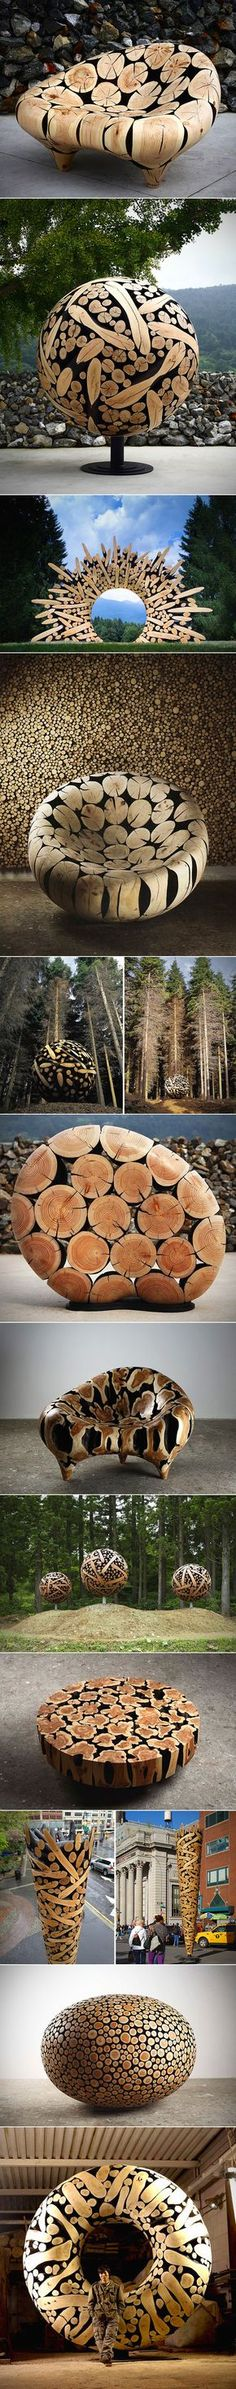 South Korean artist Jae-Hyo Lee turns discarded pieces of wood into incredible sleek sculptures. Having assembled various chunks of wood, he burns and then carefully polishes them to create visual contrast and a smooth surface. Art Sculpture, Tree Trunks, Environmental Art, Public Art, Oeuvre D'art, Installation Art, Garden Art, Wood Art, Amazing Art